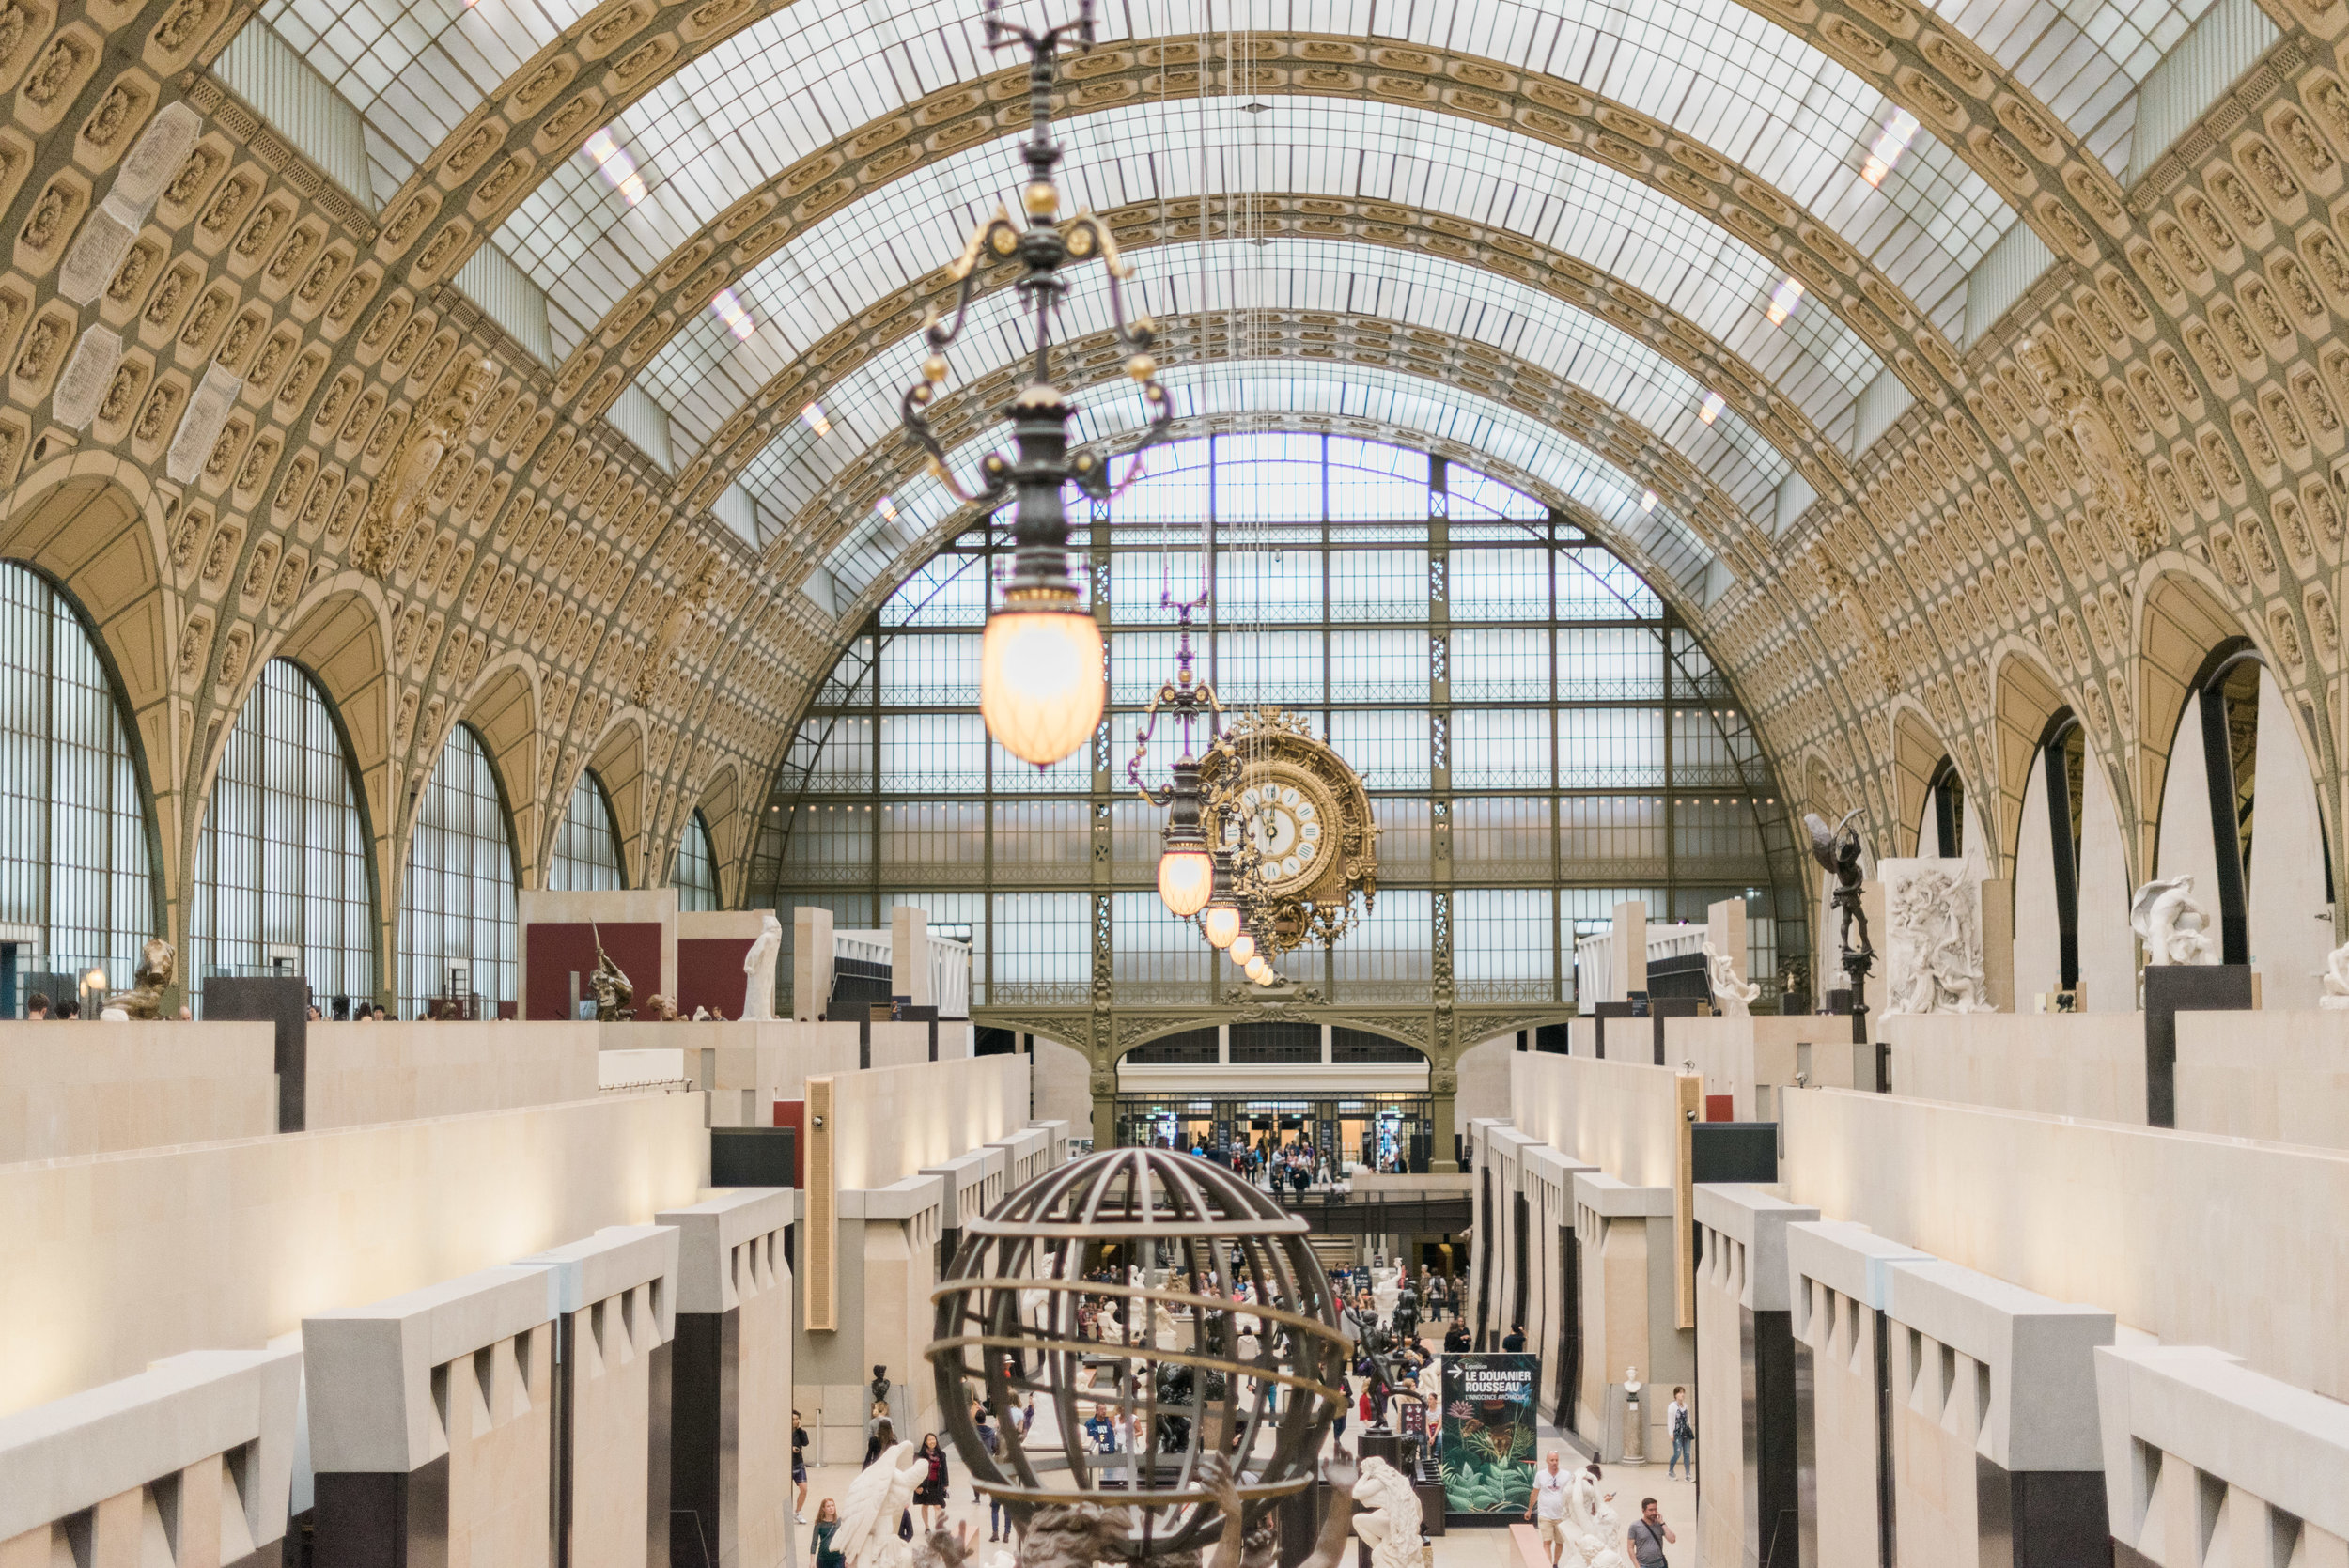 musee d'orsay paris france travel photographer